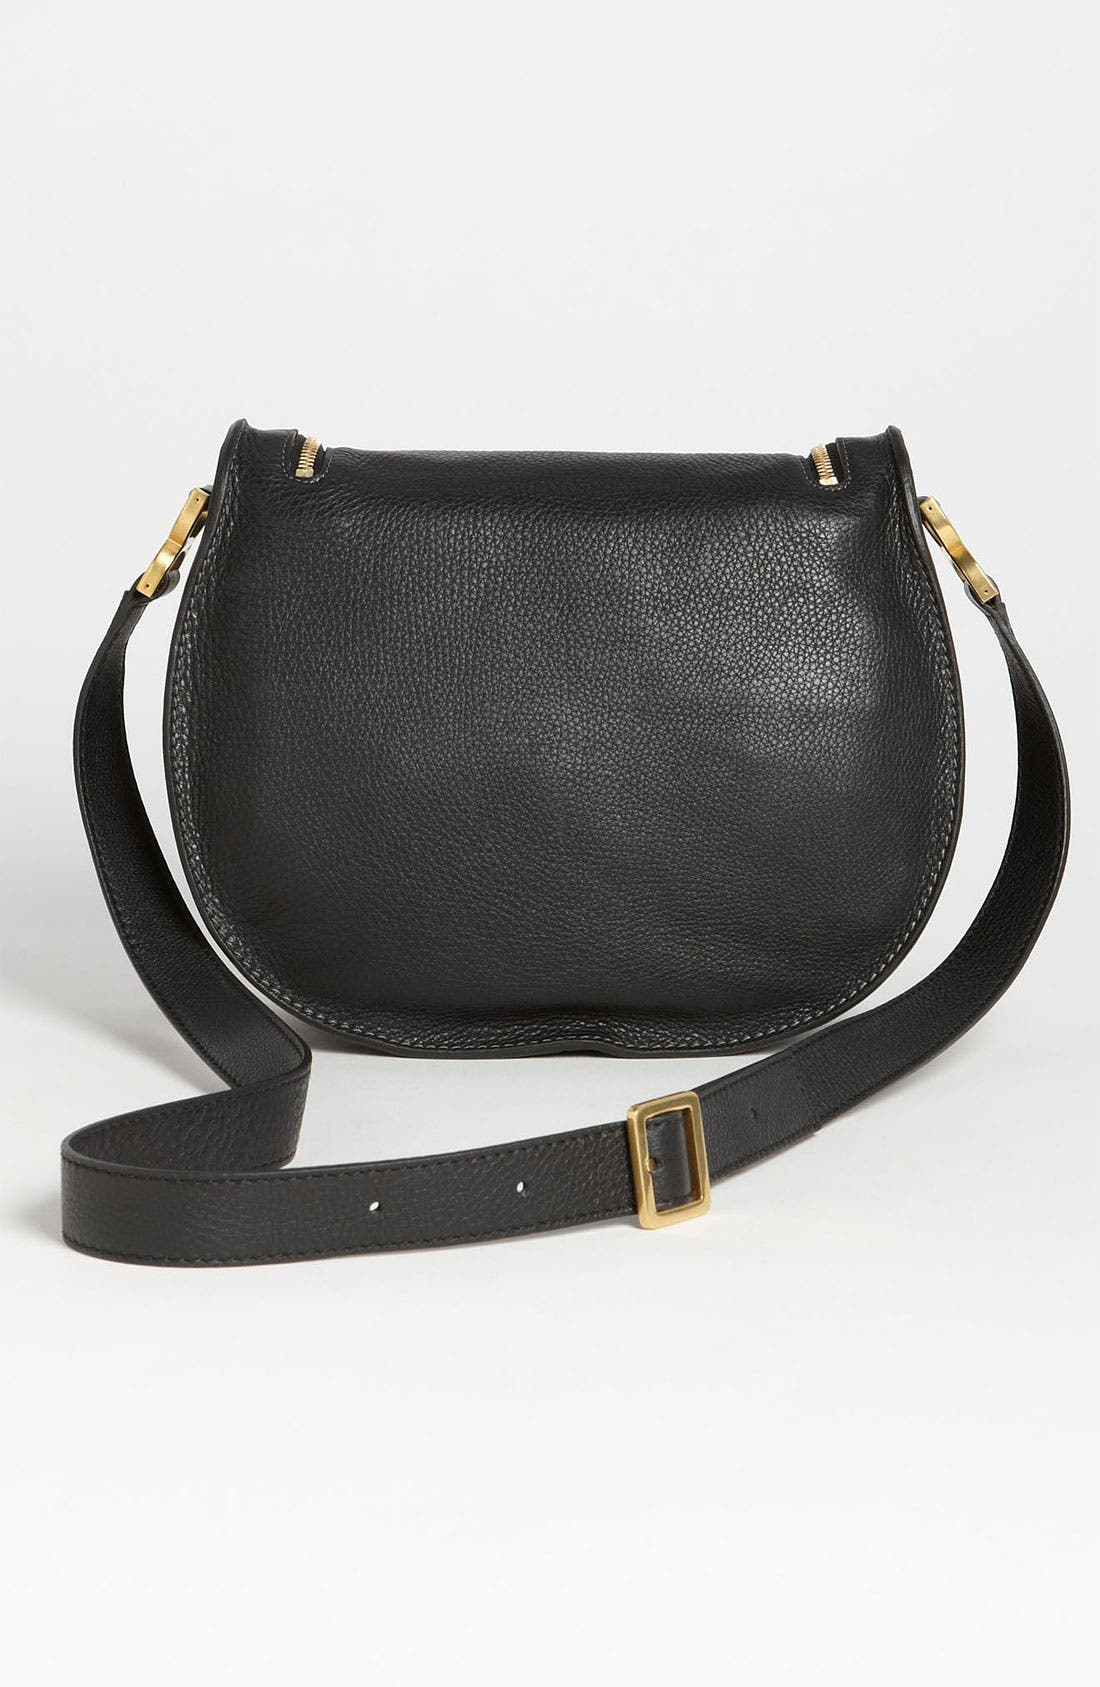 'Marcie' Leather Crossbody Bag,                             Alternate thumbnail 3, color,                             001